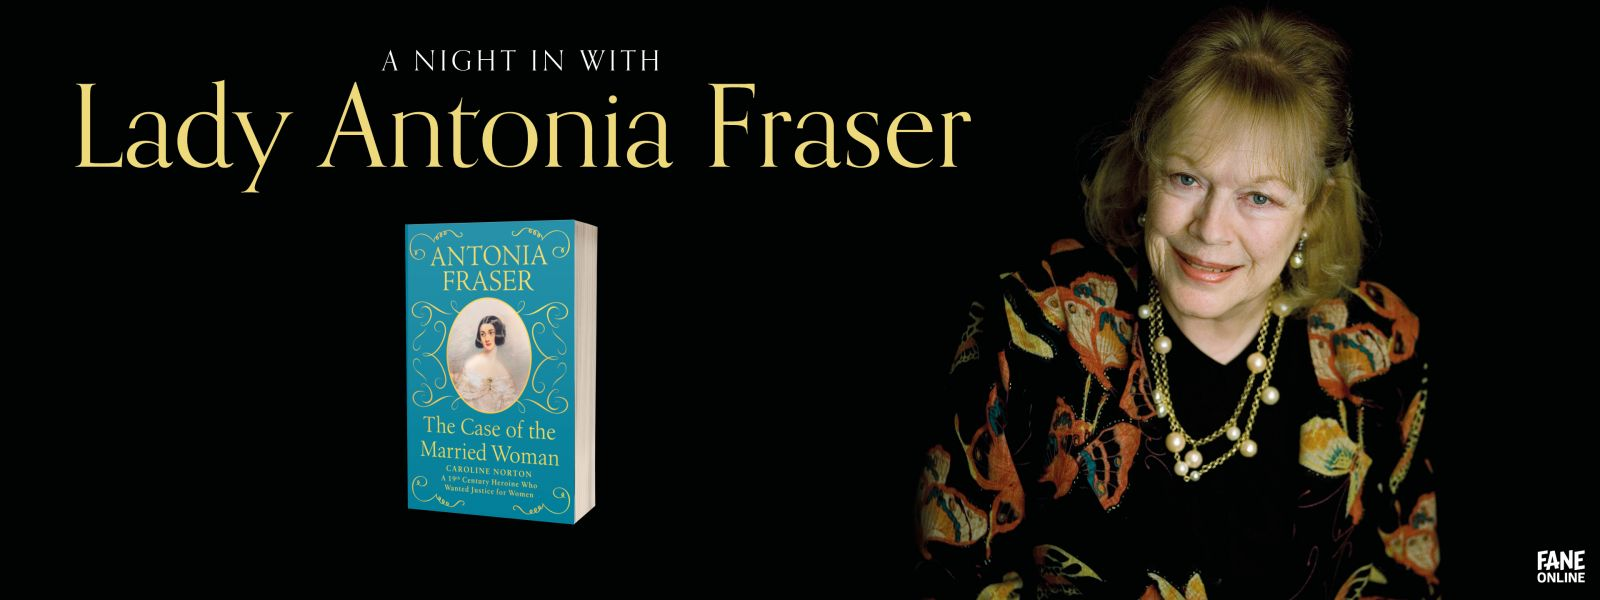 A Night In with Lady Antonia Fraser